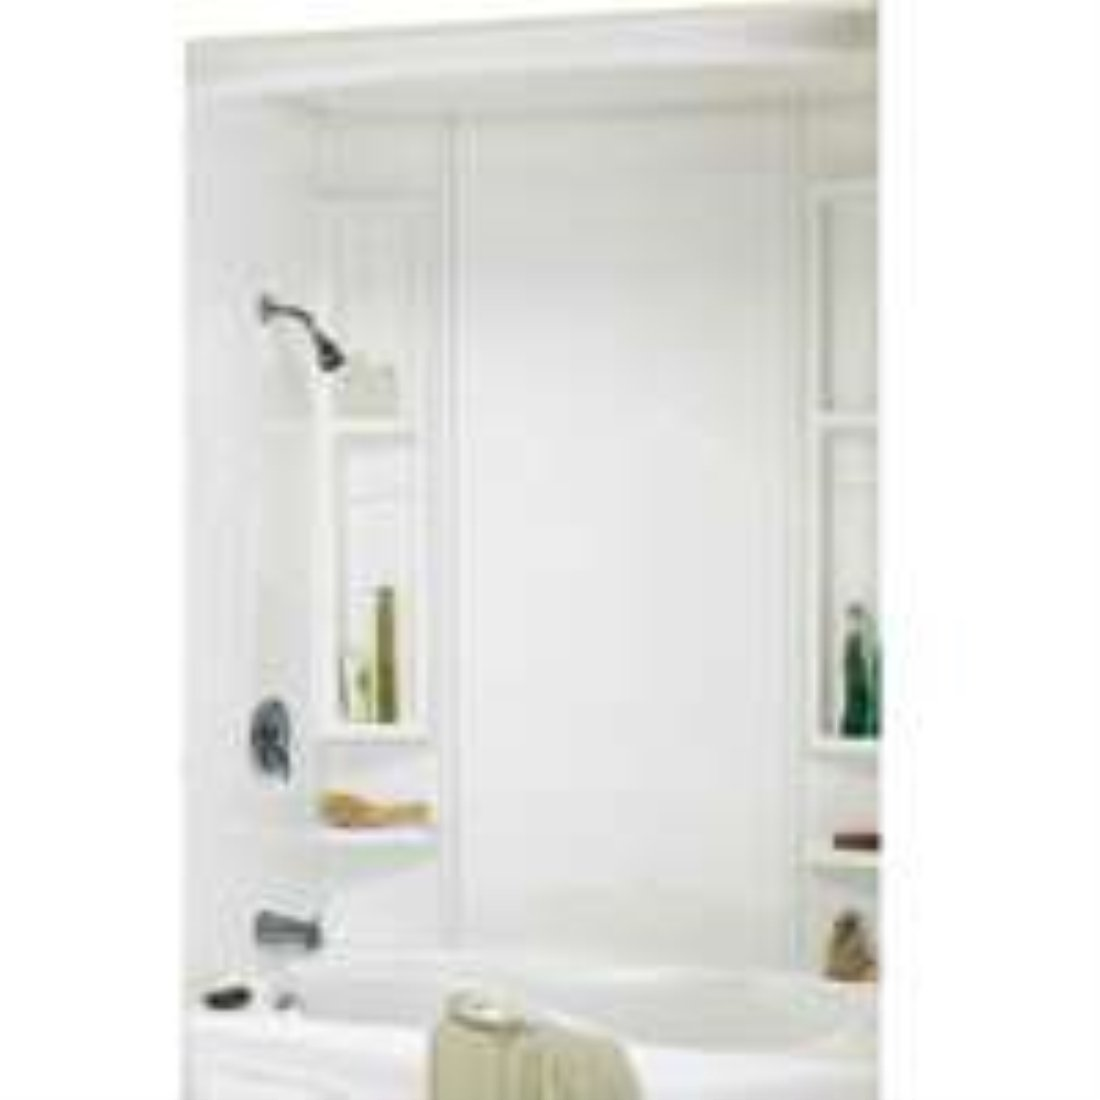 5-piece White Tub Wall Kit - Bathtub Walls And Surrounds - Amazon.com